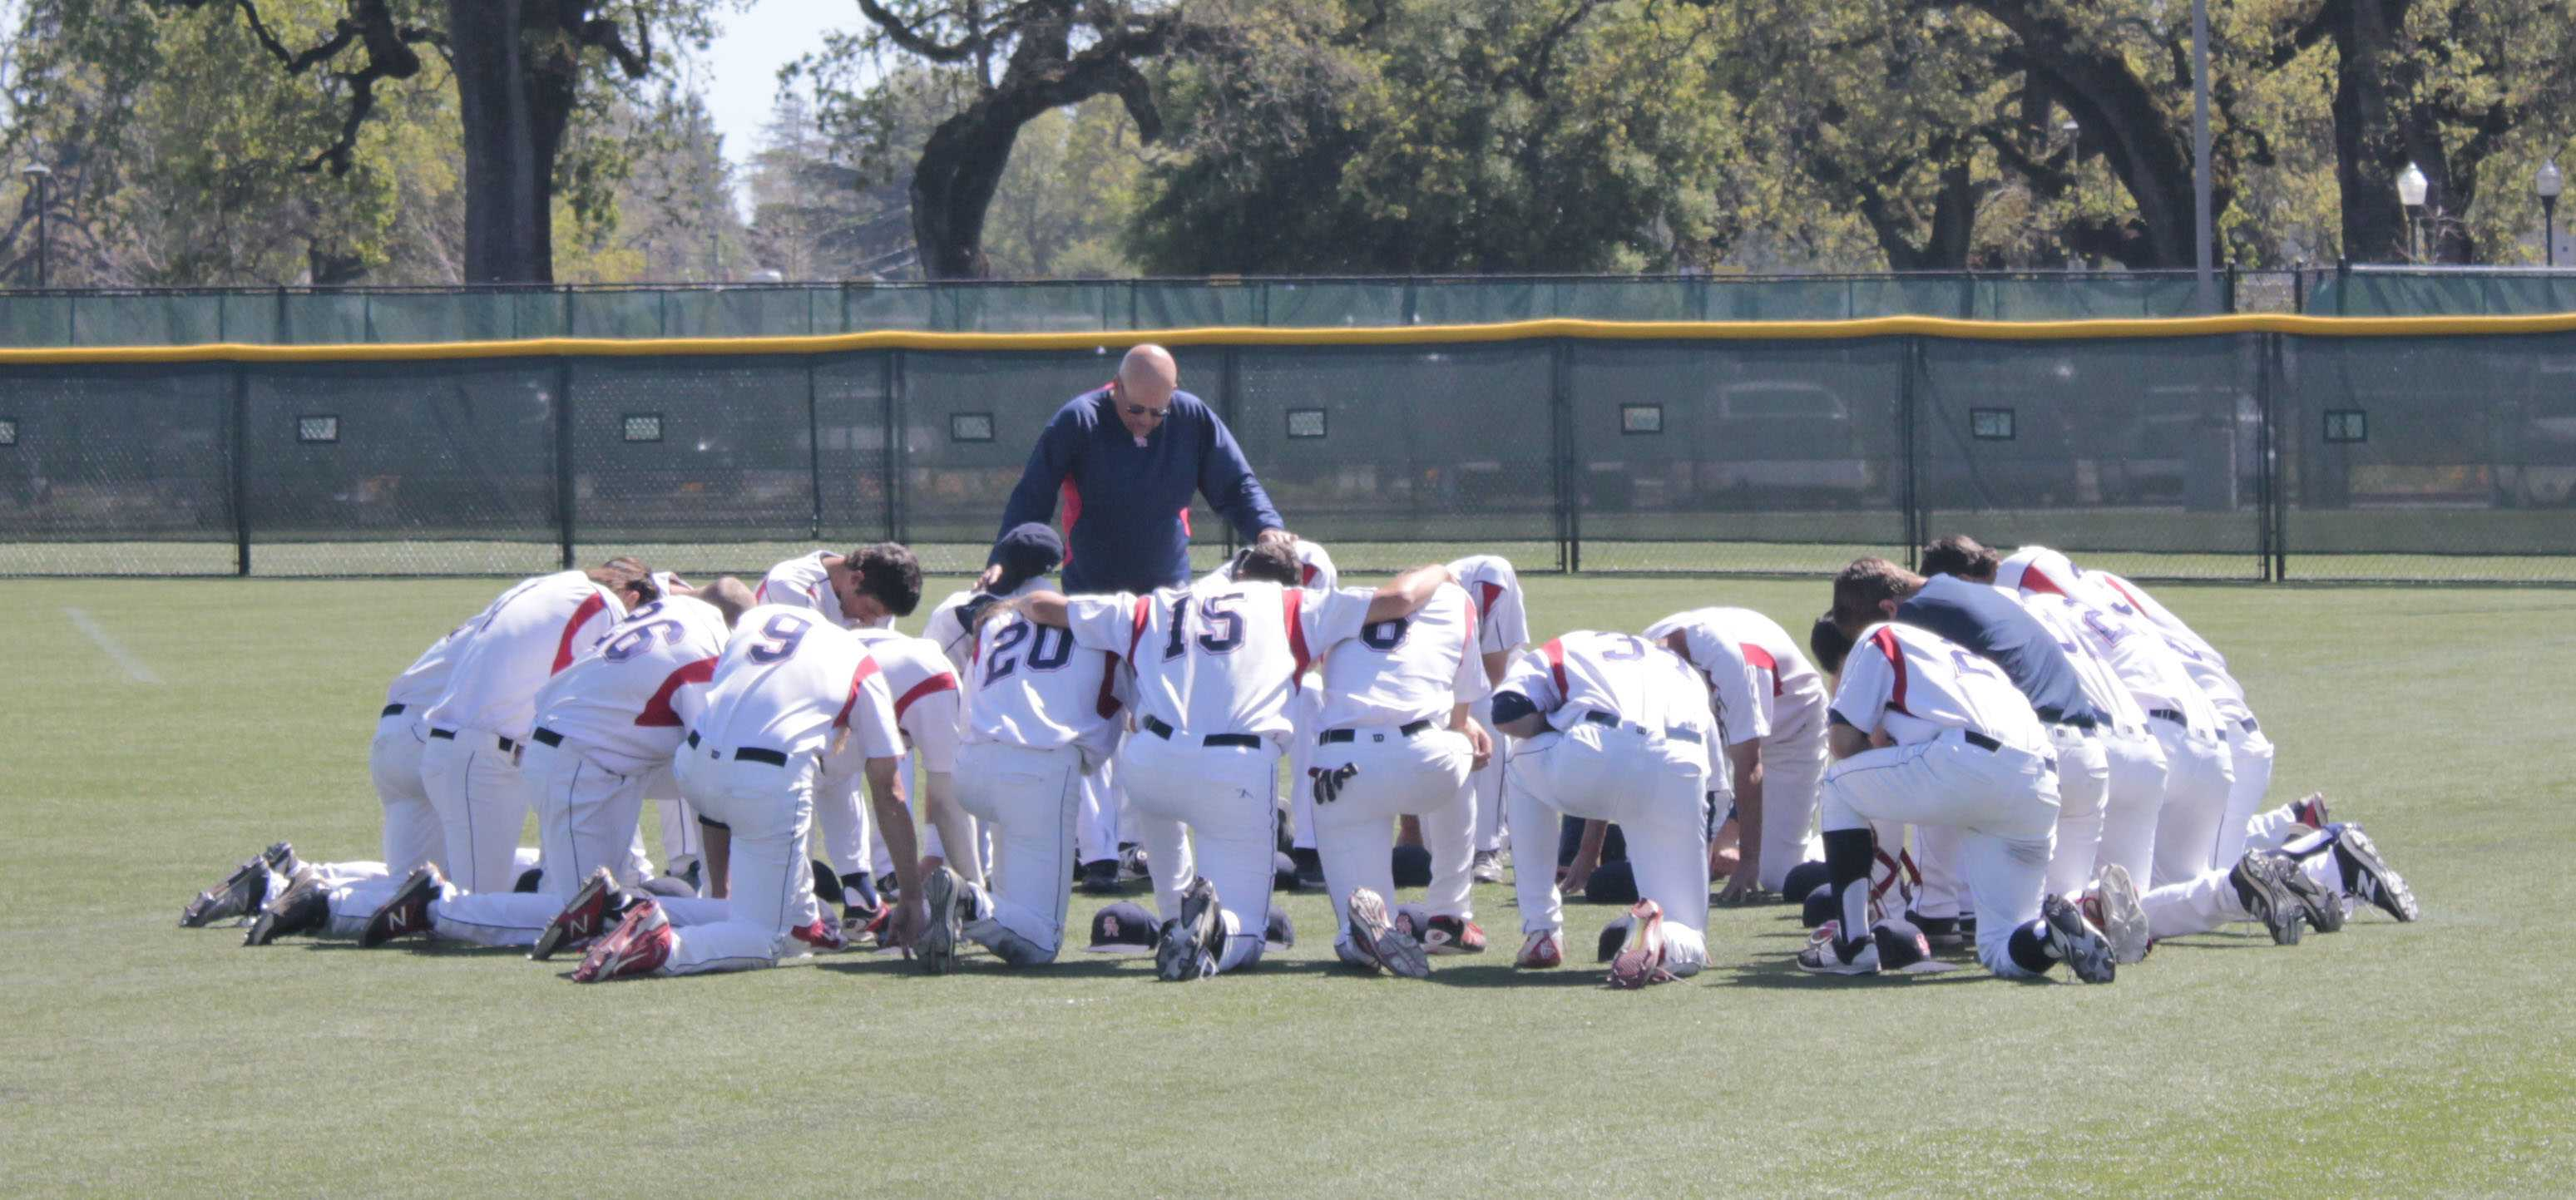 Assistant coach Tom Francois gathers the Bear Cubs together for a team prayer before the beginning of their game.